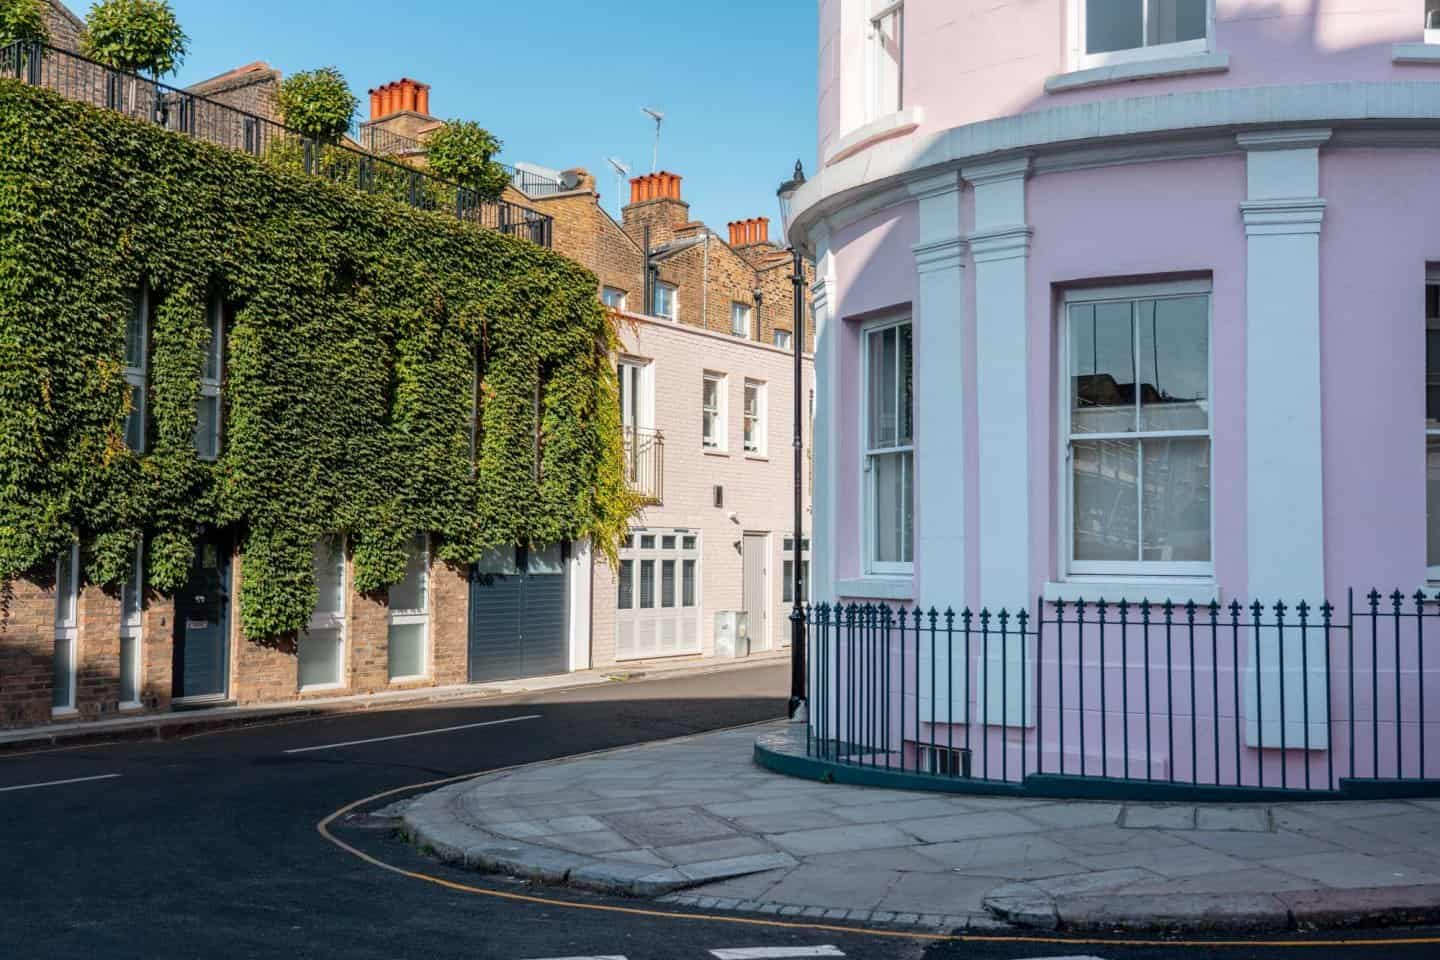 Pretty pink house in Notting Hill London